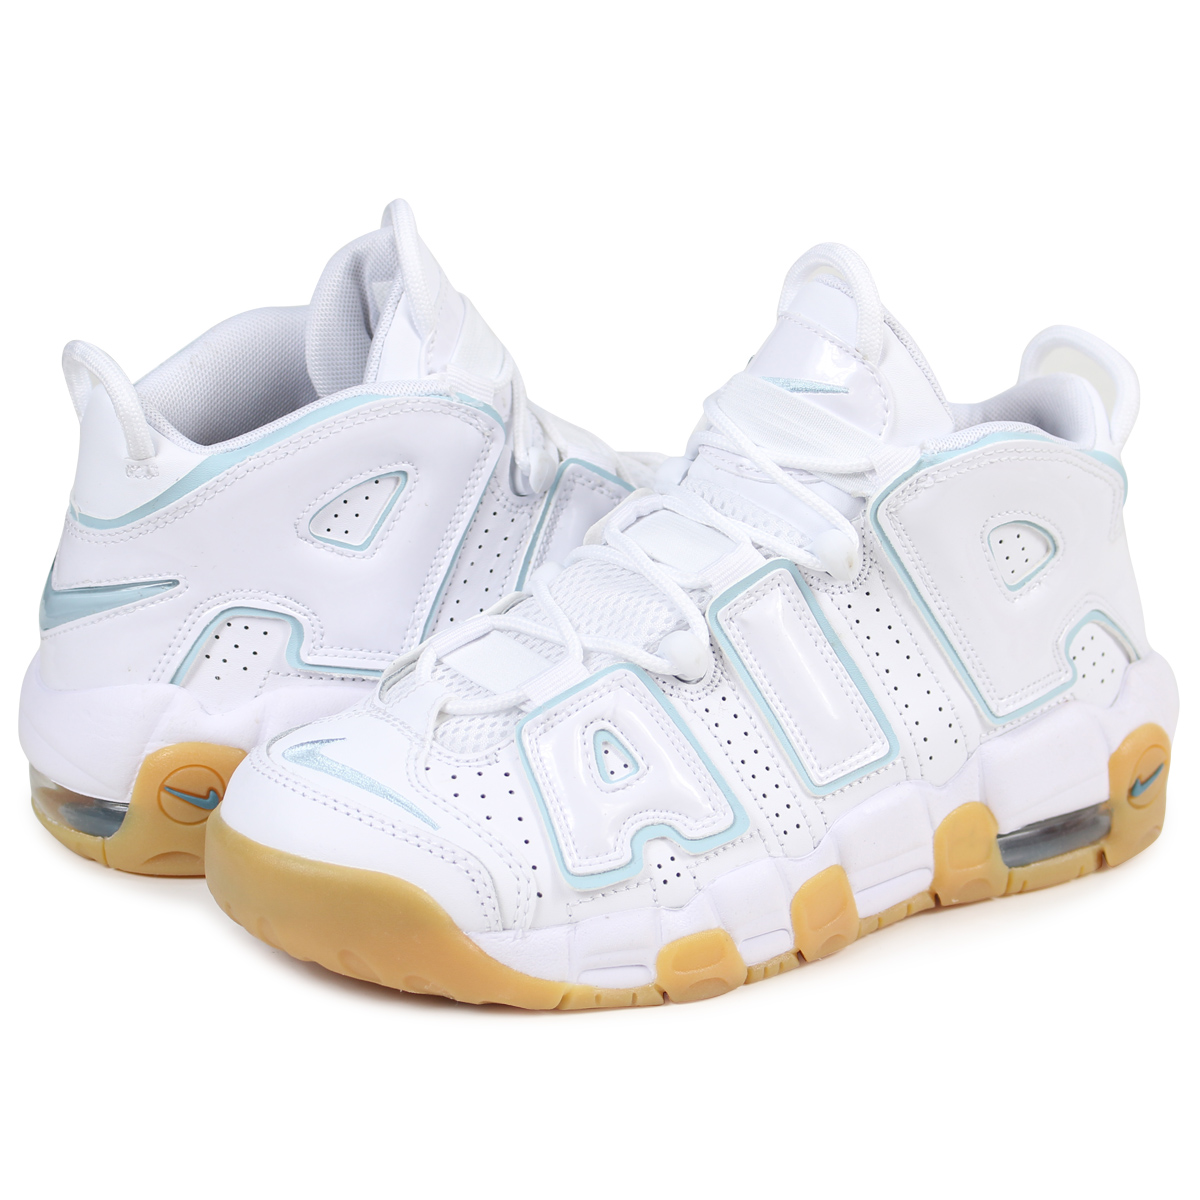 b0b8b82b28 NIKE AIR MORE UPTEMPO GS Nike air more up tempo Lady's sneakers 415,082-107  white ...